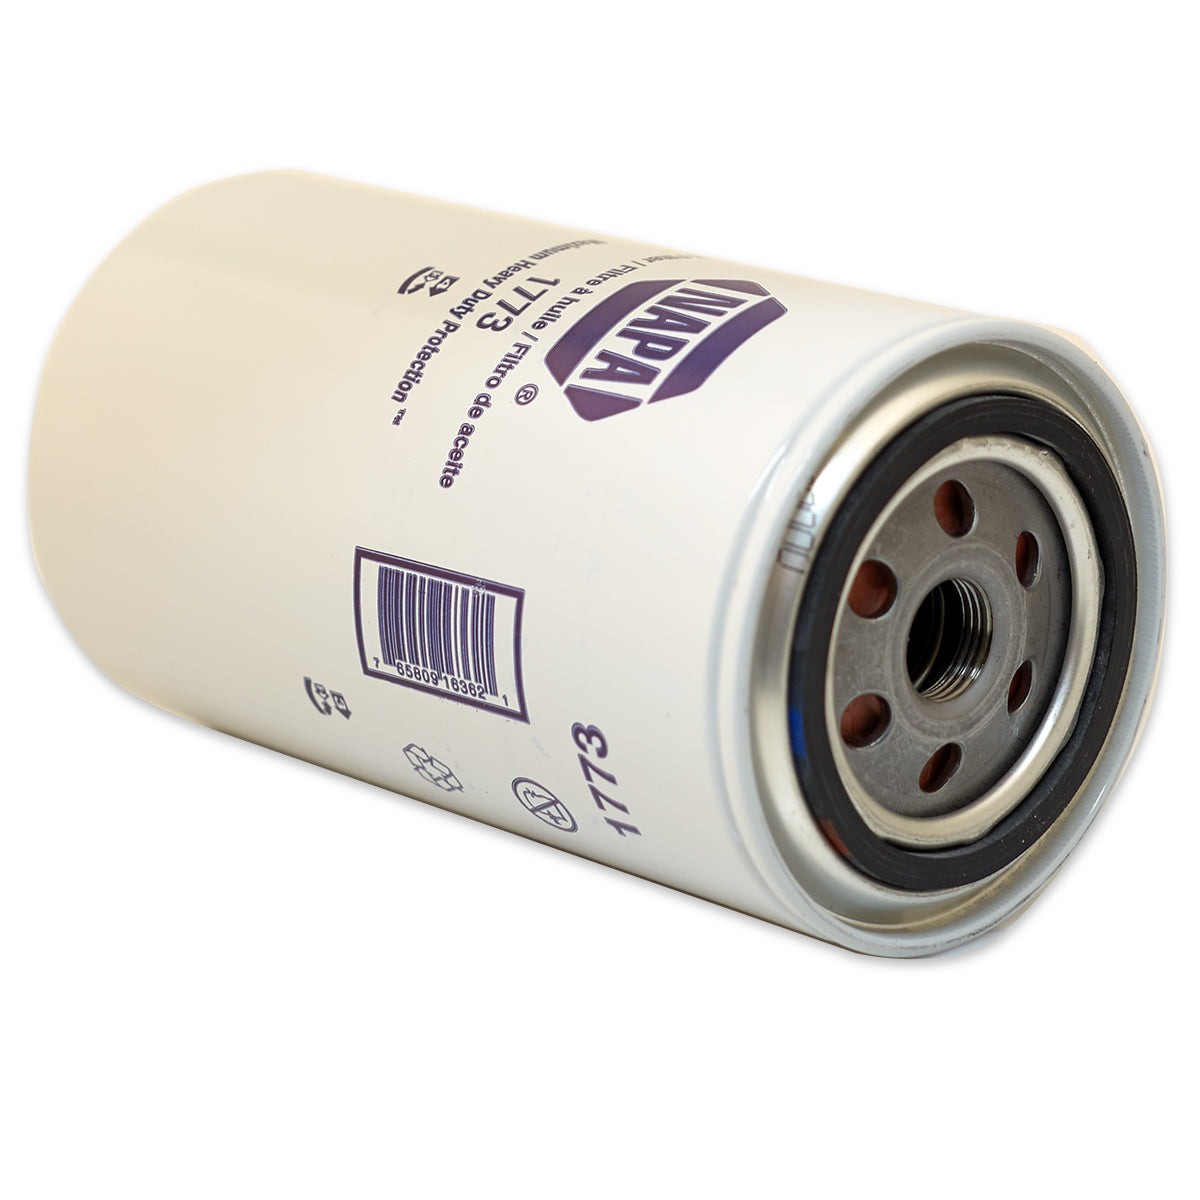 Oil Filter for Airablo Vacuum Pump